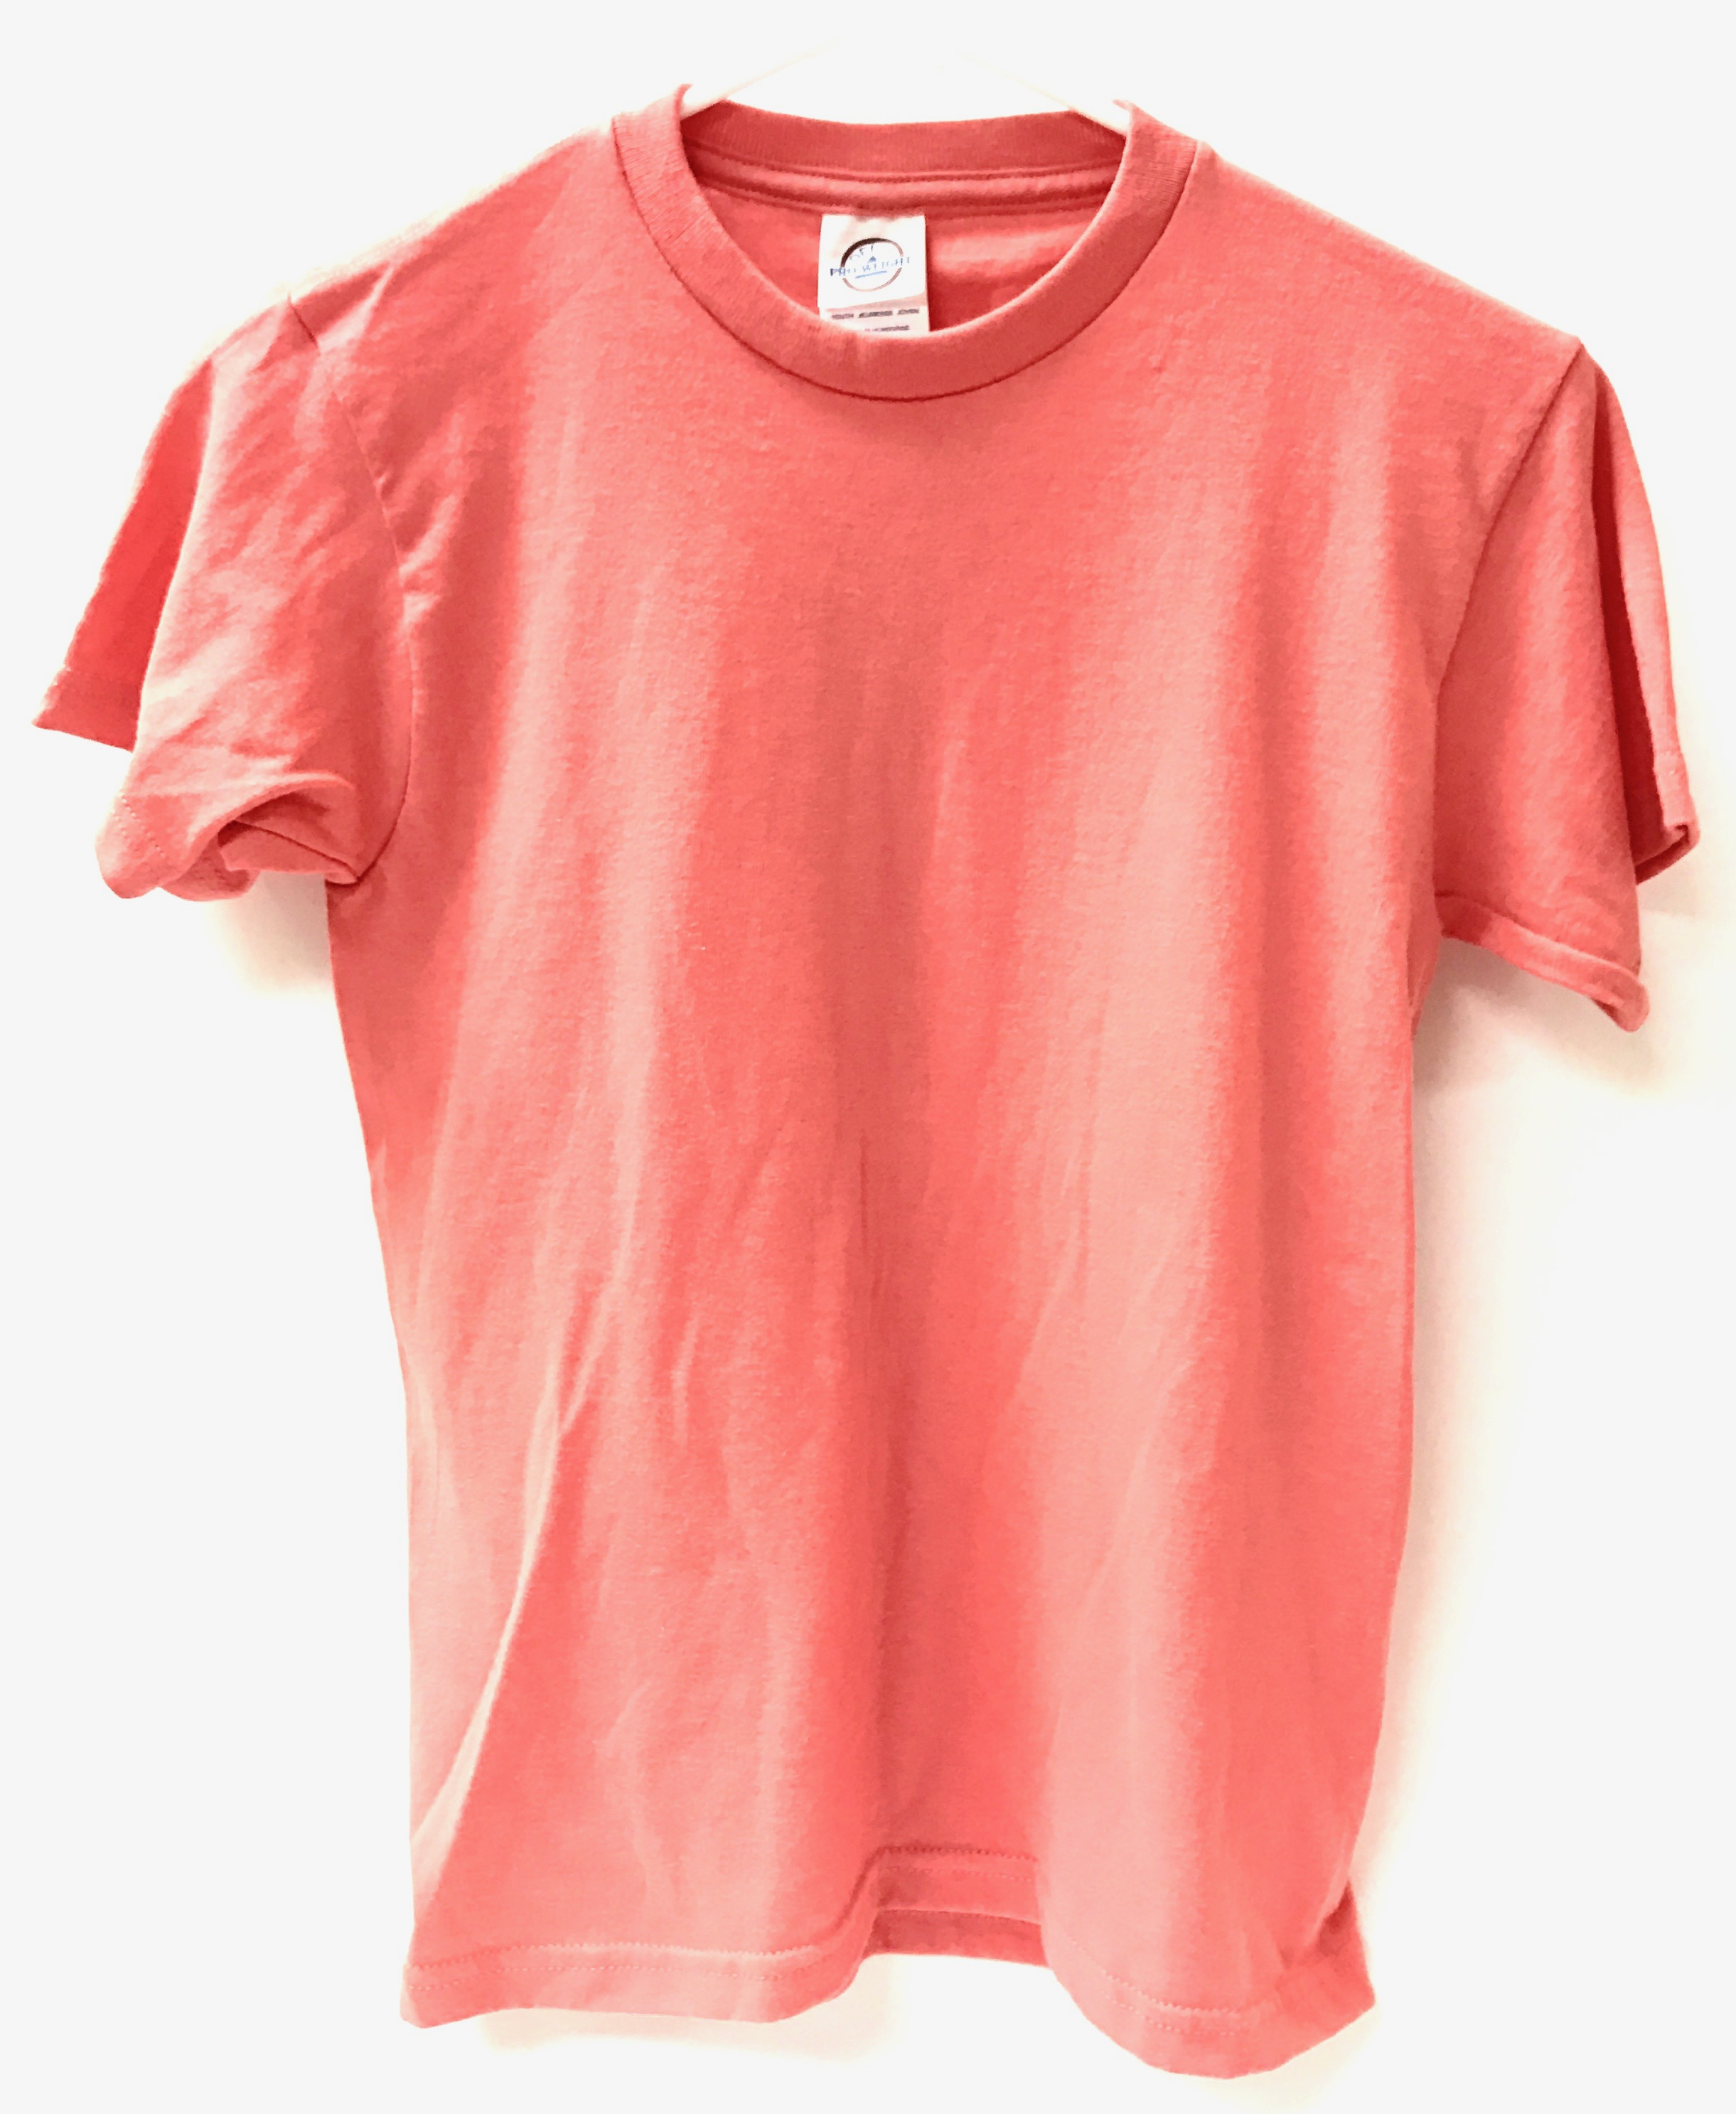 Youth Short Sleeve Tee - Coral